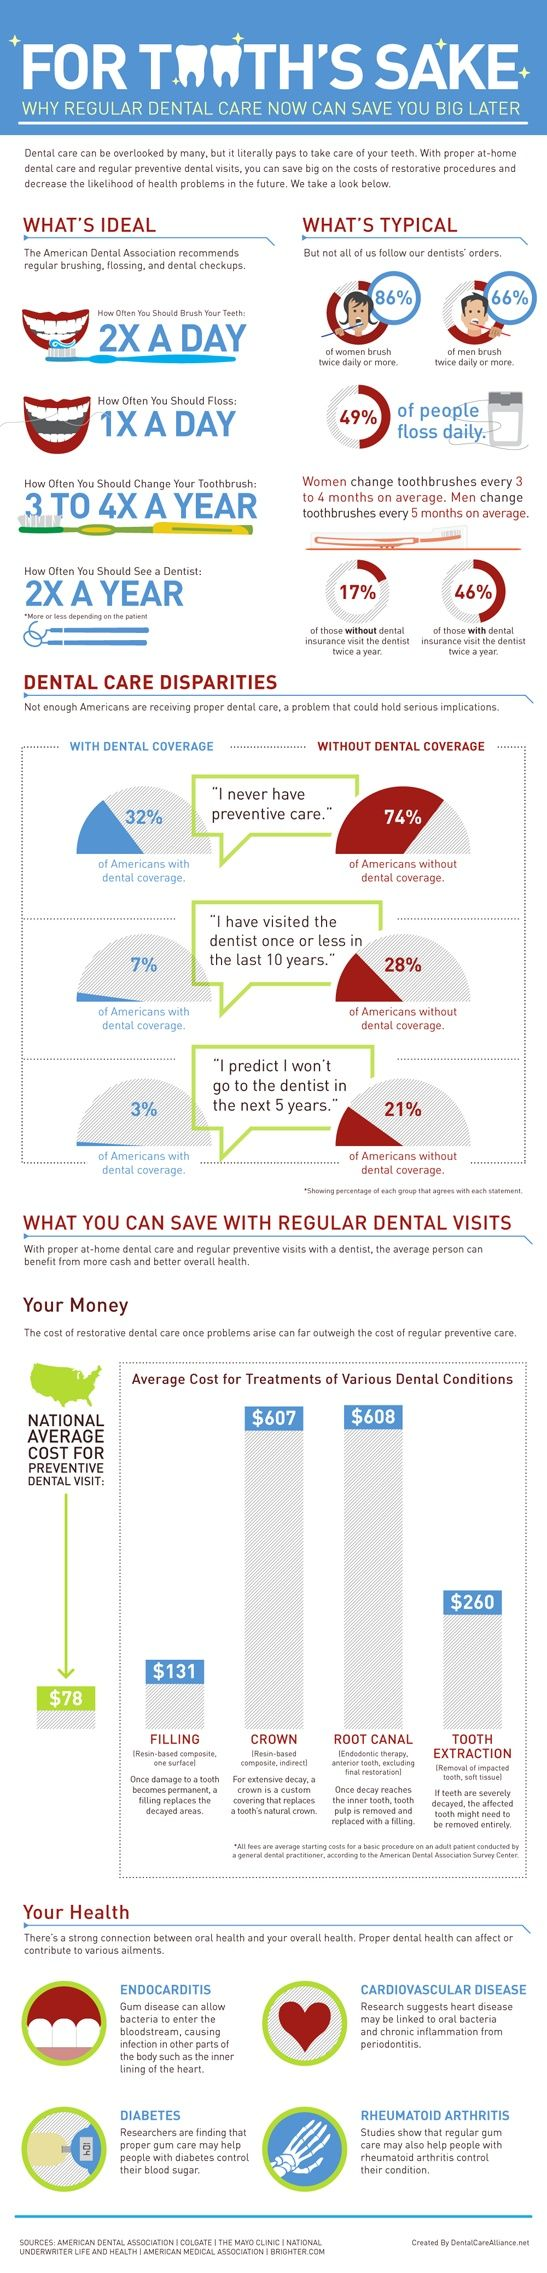 Info-graphic on how seeing your Dentist regularly can help you save money--preventive care